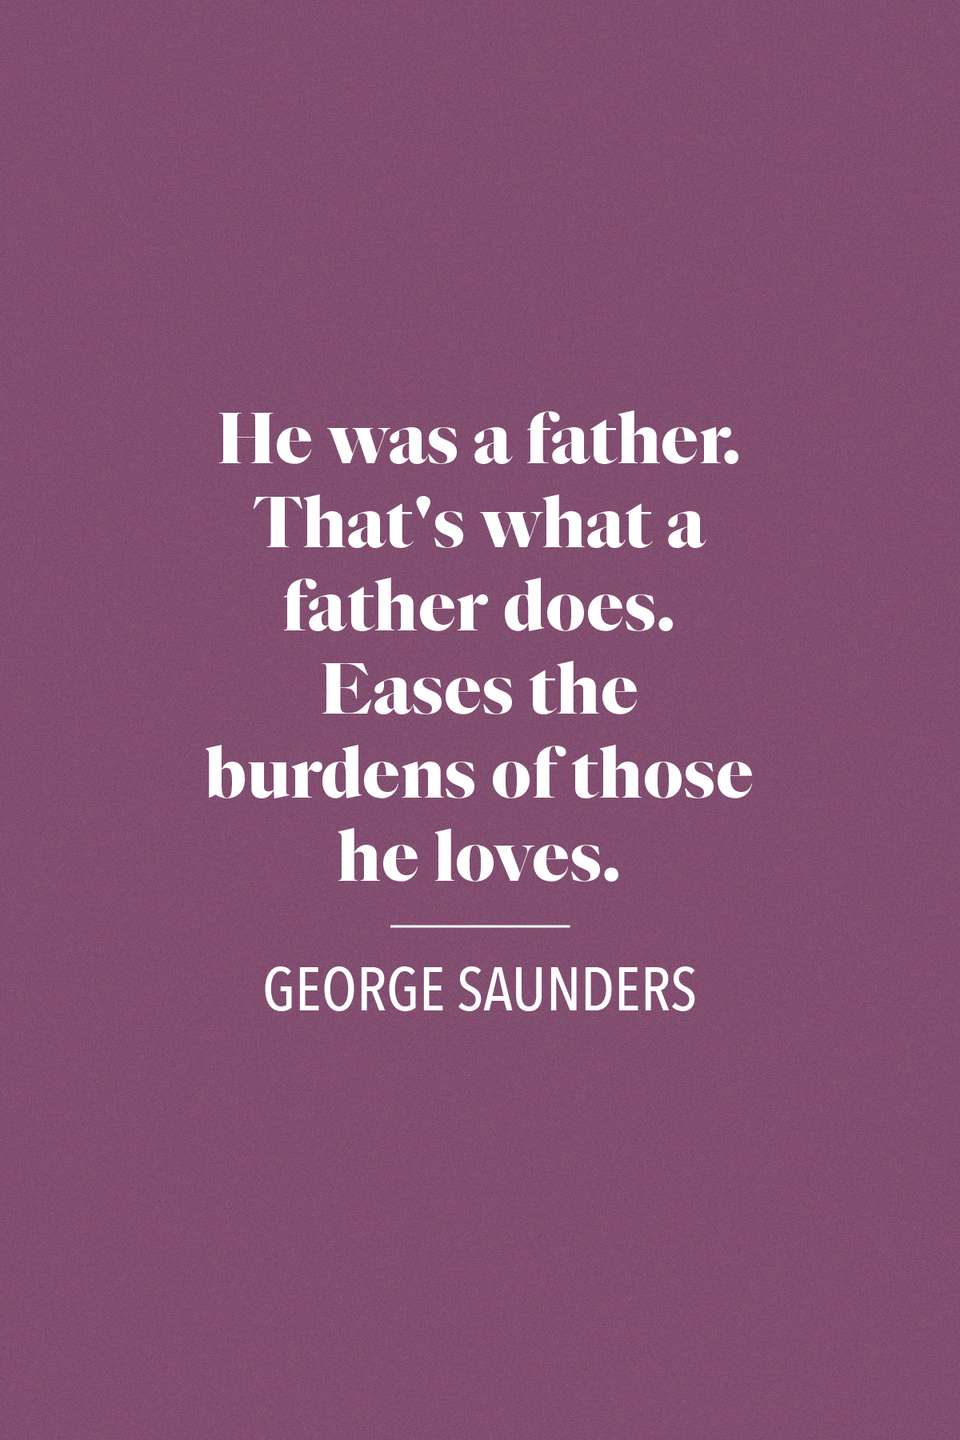 "<p>""He was a father. That's what a father does. Eases the burdens of those he loves,"" George Saunders, a writer whose short stories were published in <em>The New Yorker</em>, said in his book <em><a href=""https://www.amazon.com/Tenth-December-Stories-George-Saunders/dp/0812984250?tag=syn-yahoo-20&ascsubtag=%5Bartid%7C10072.g.32909234%5Bsrc%7Cyahoo-us"" rel=""nofollow noopener"" target=""_blank"" data-ylk=""slk:Tenth of December: Stories"" class=""link rapid-noclick-resp"">Tenth of December: Stories</a>.</em></p>"